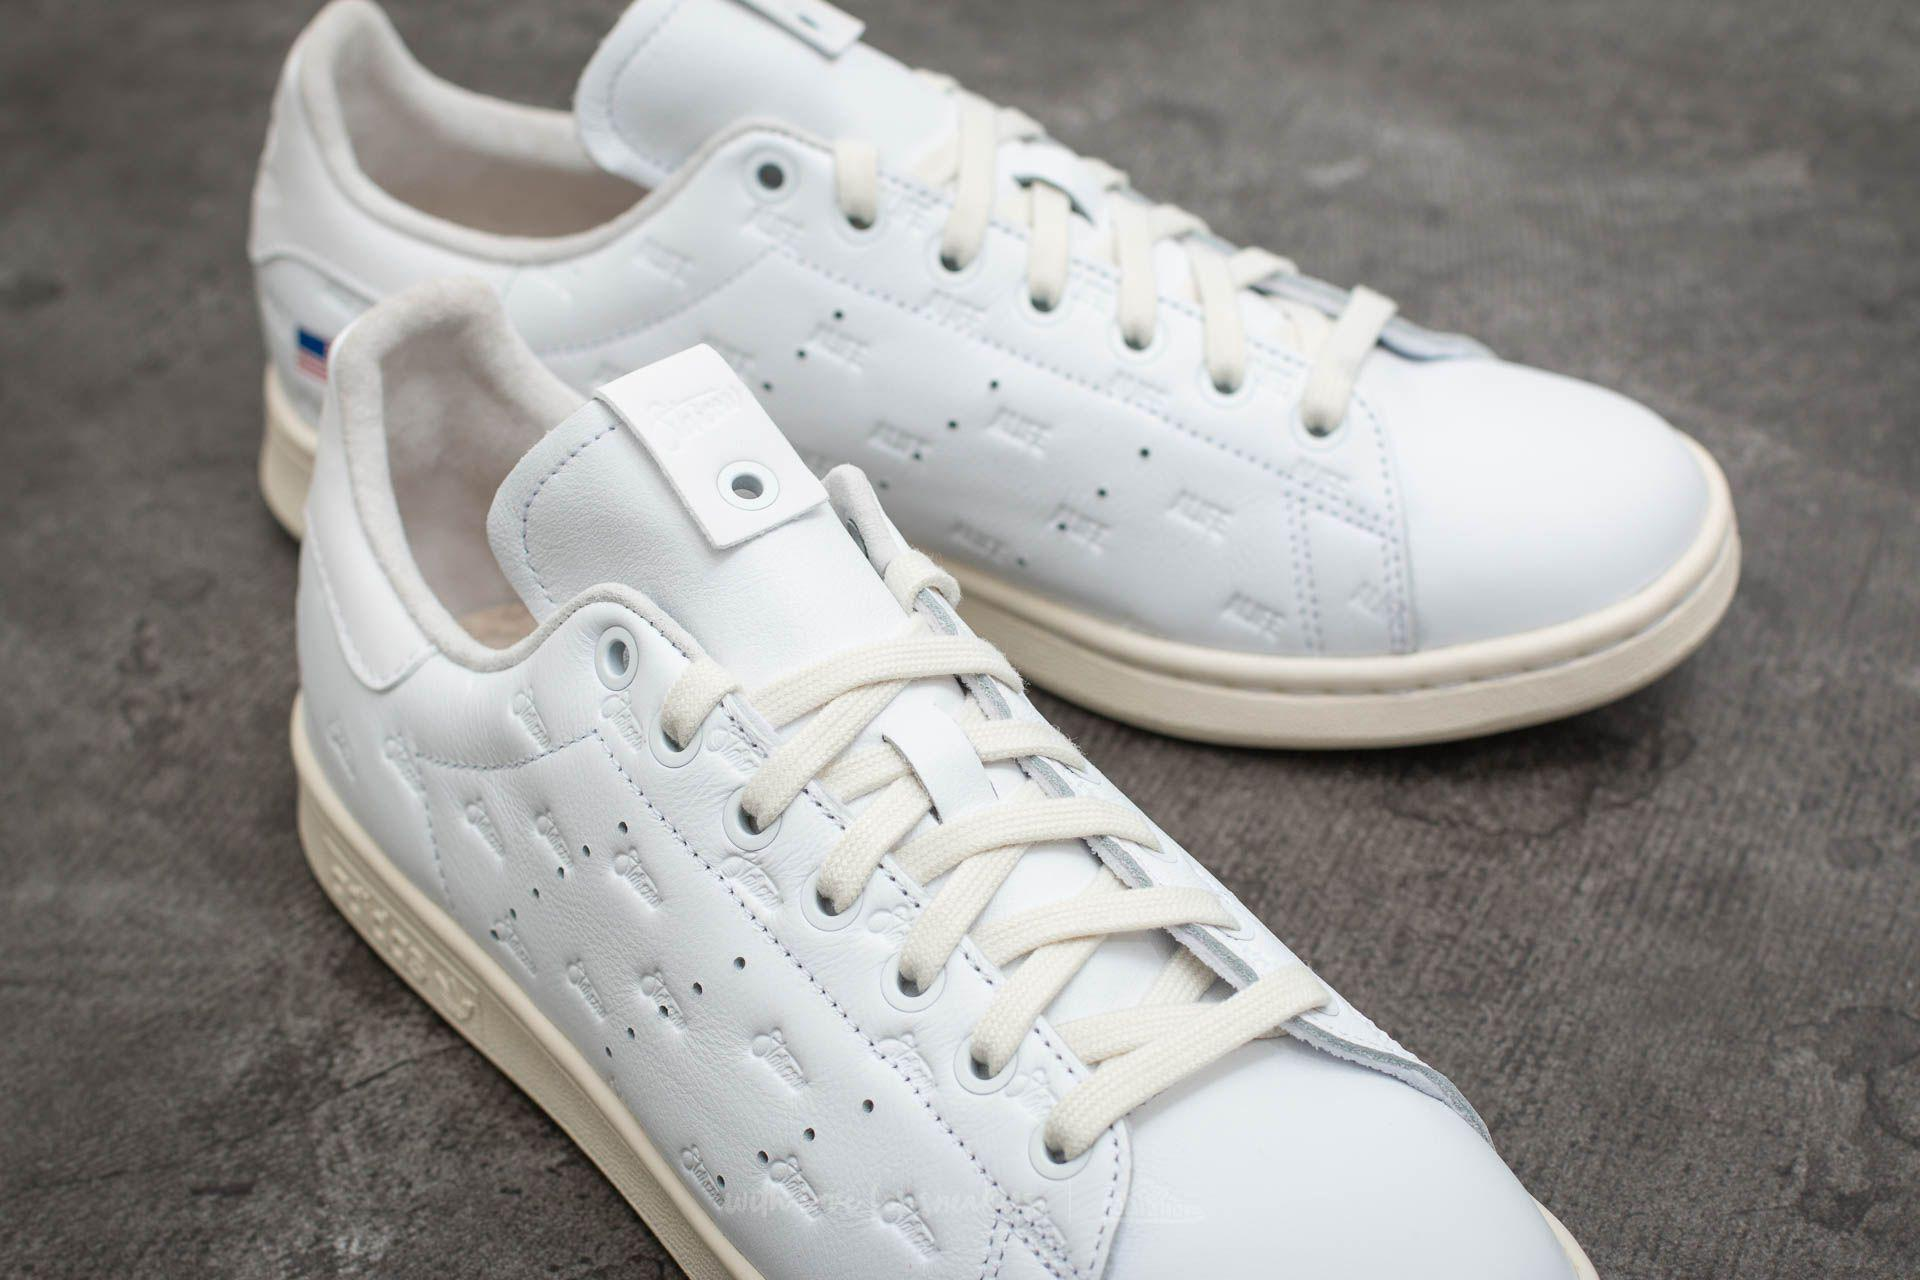 sports shoes outlet outlet online Adidas Consortium X Alife X Starcow Stan Smith S.e. Core White/ Core White/  Core White